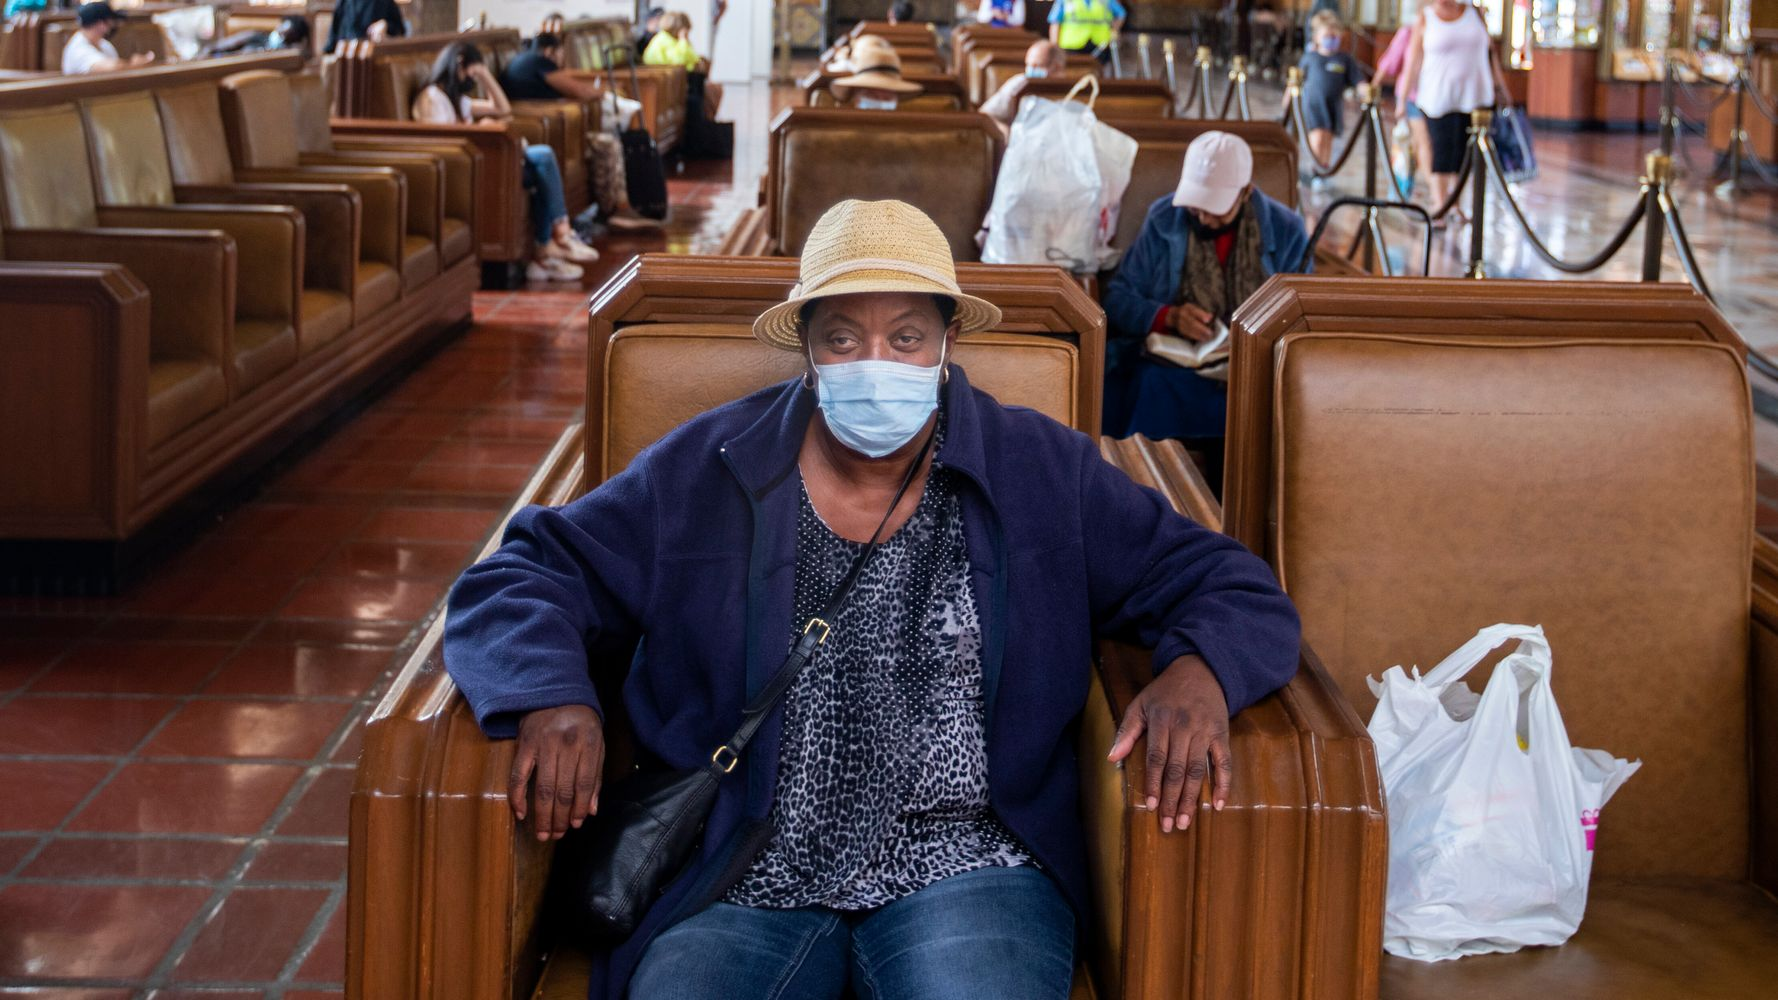 LA County To Require Masks Indoors For All As Delta Strain Of COVID-19 Surges